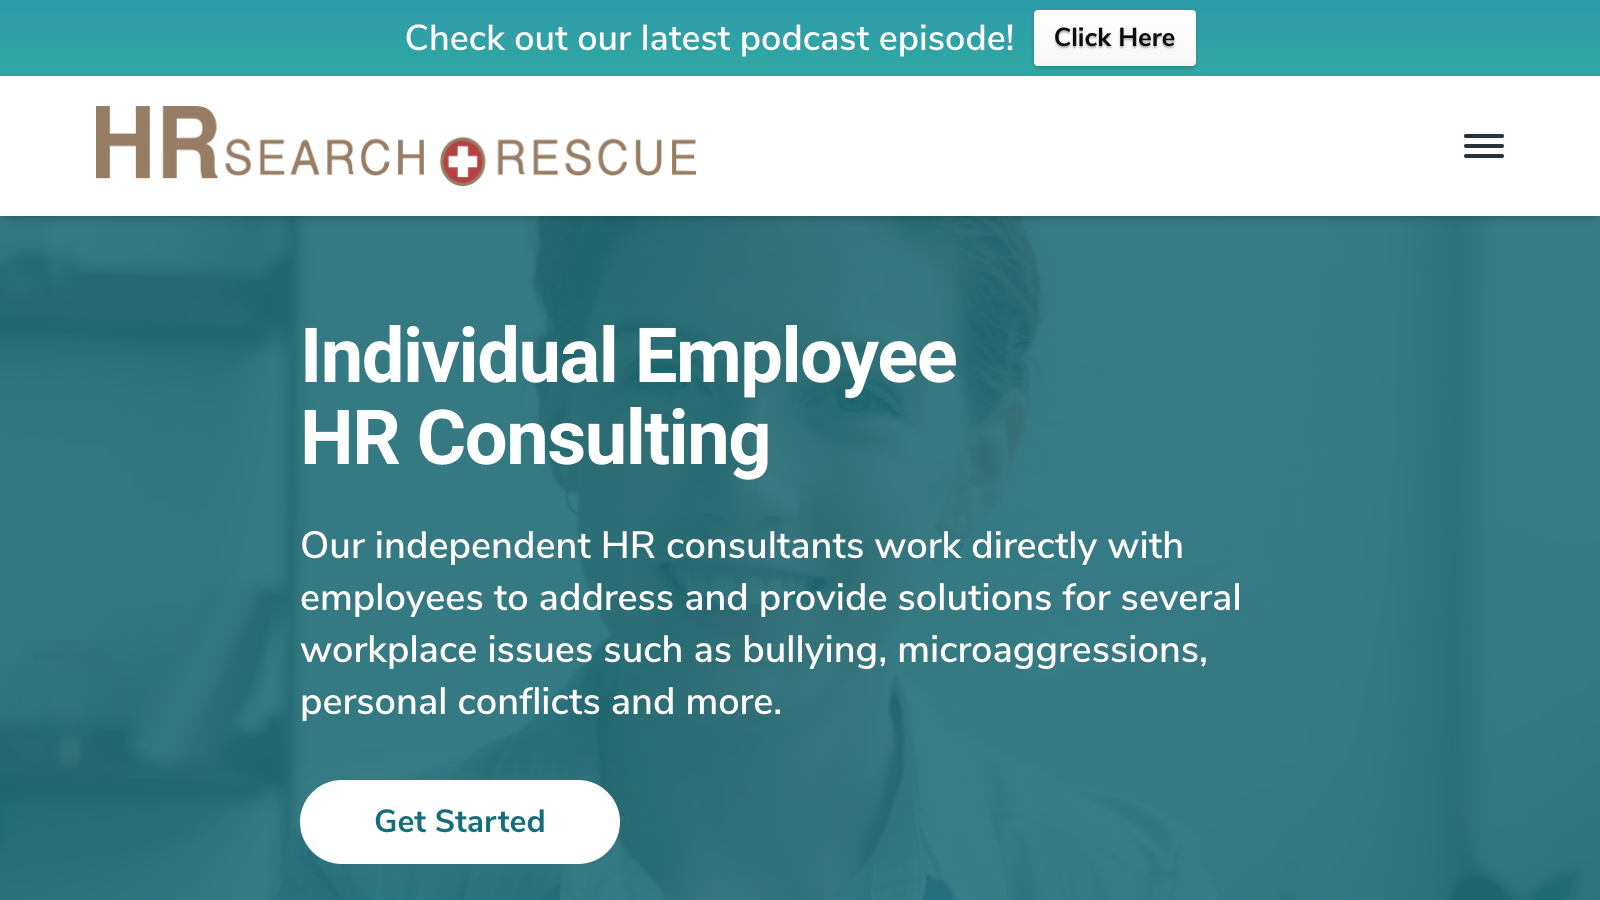 hr search and rescue website